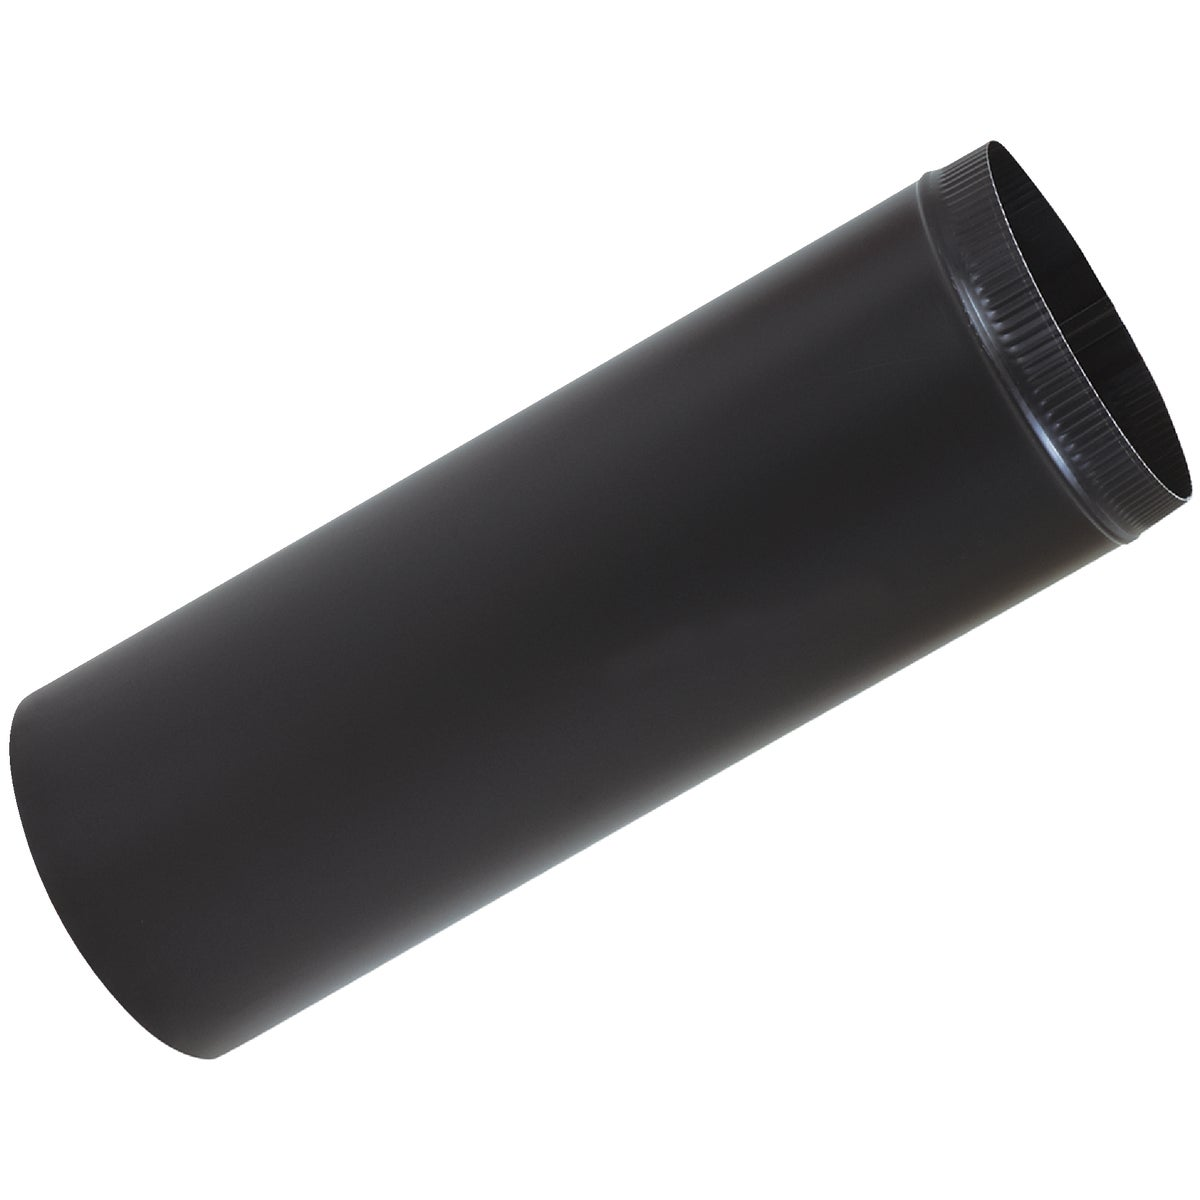 8X24 BLACK STOVE PIPE - BM0113 by Imperial Mfg Group